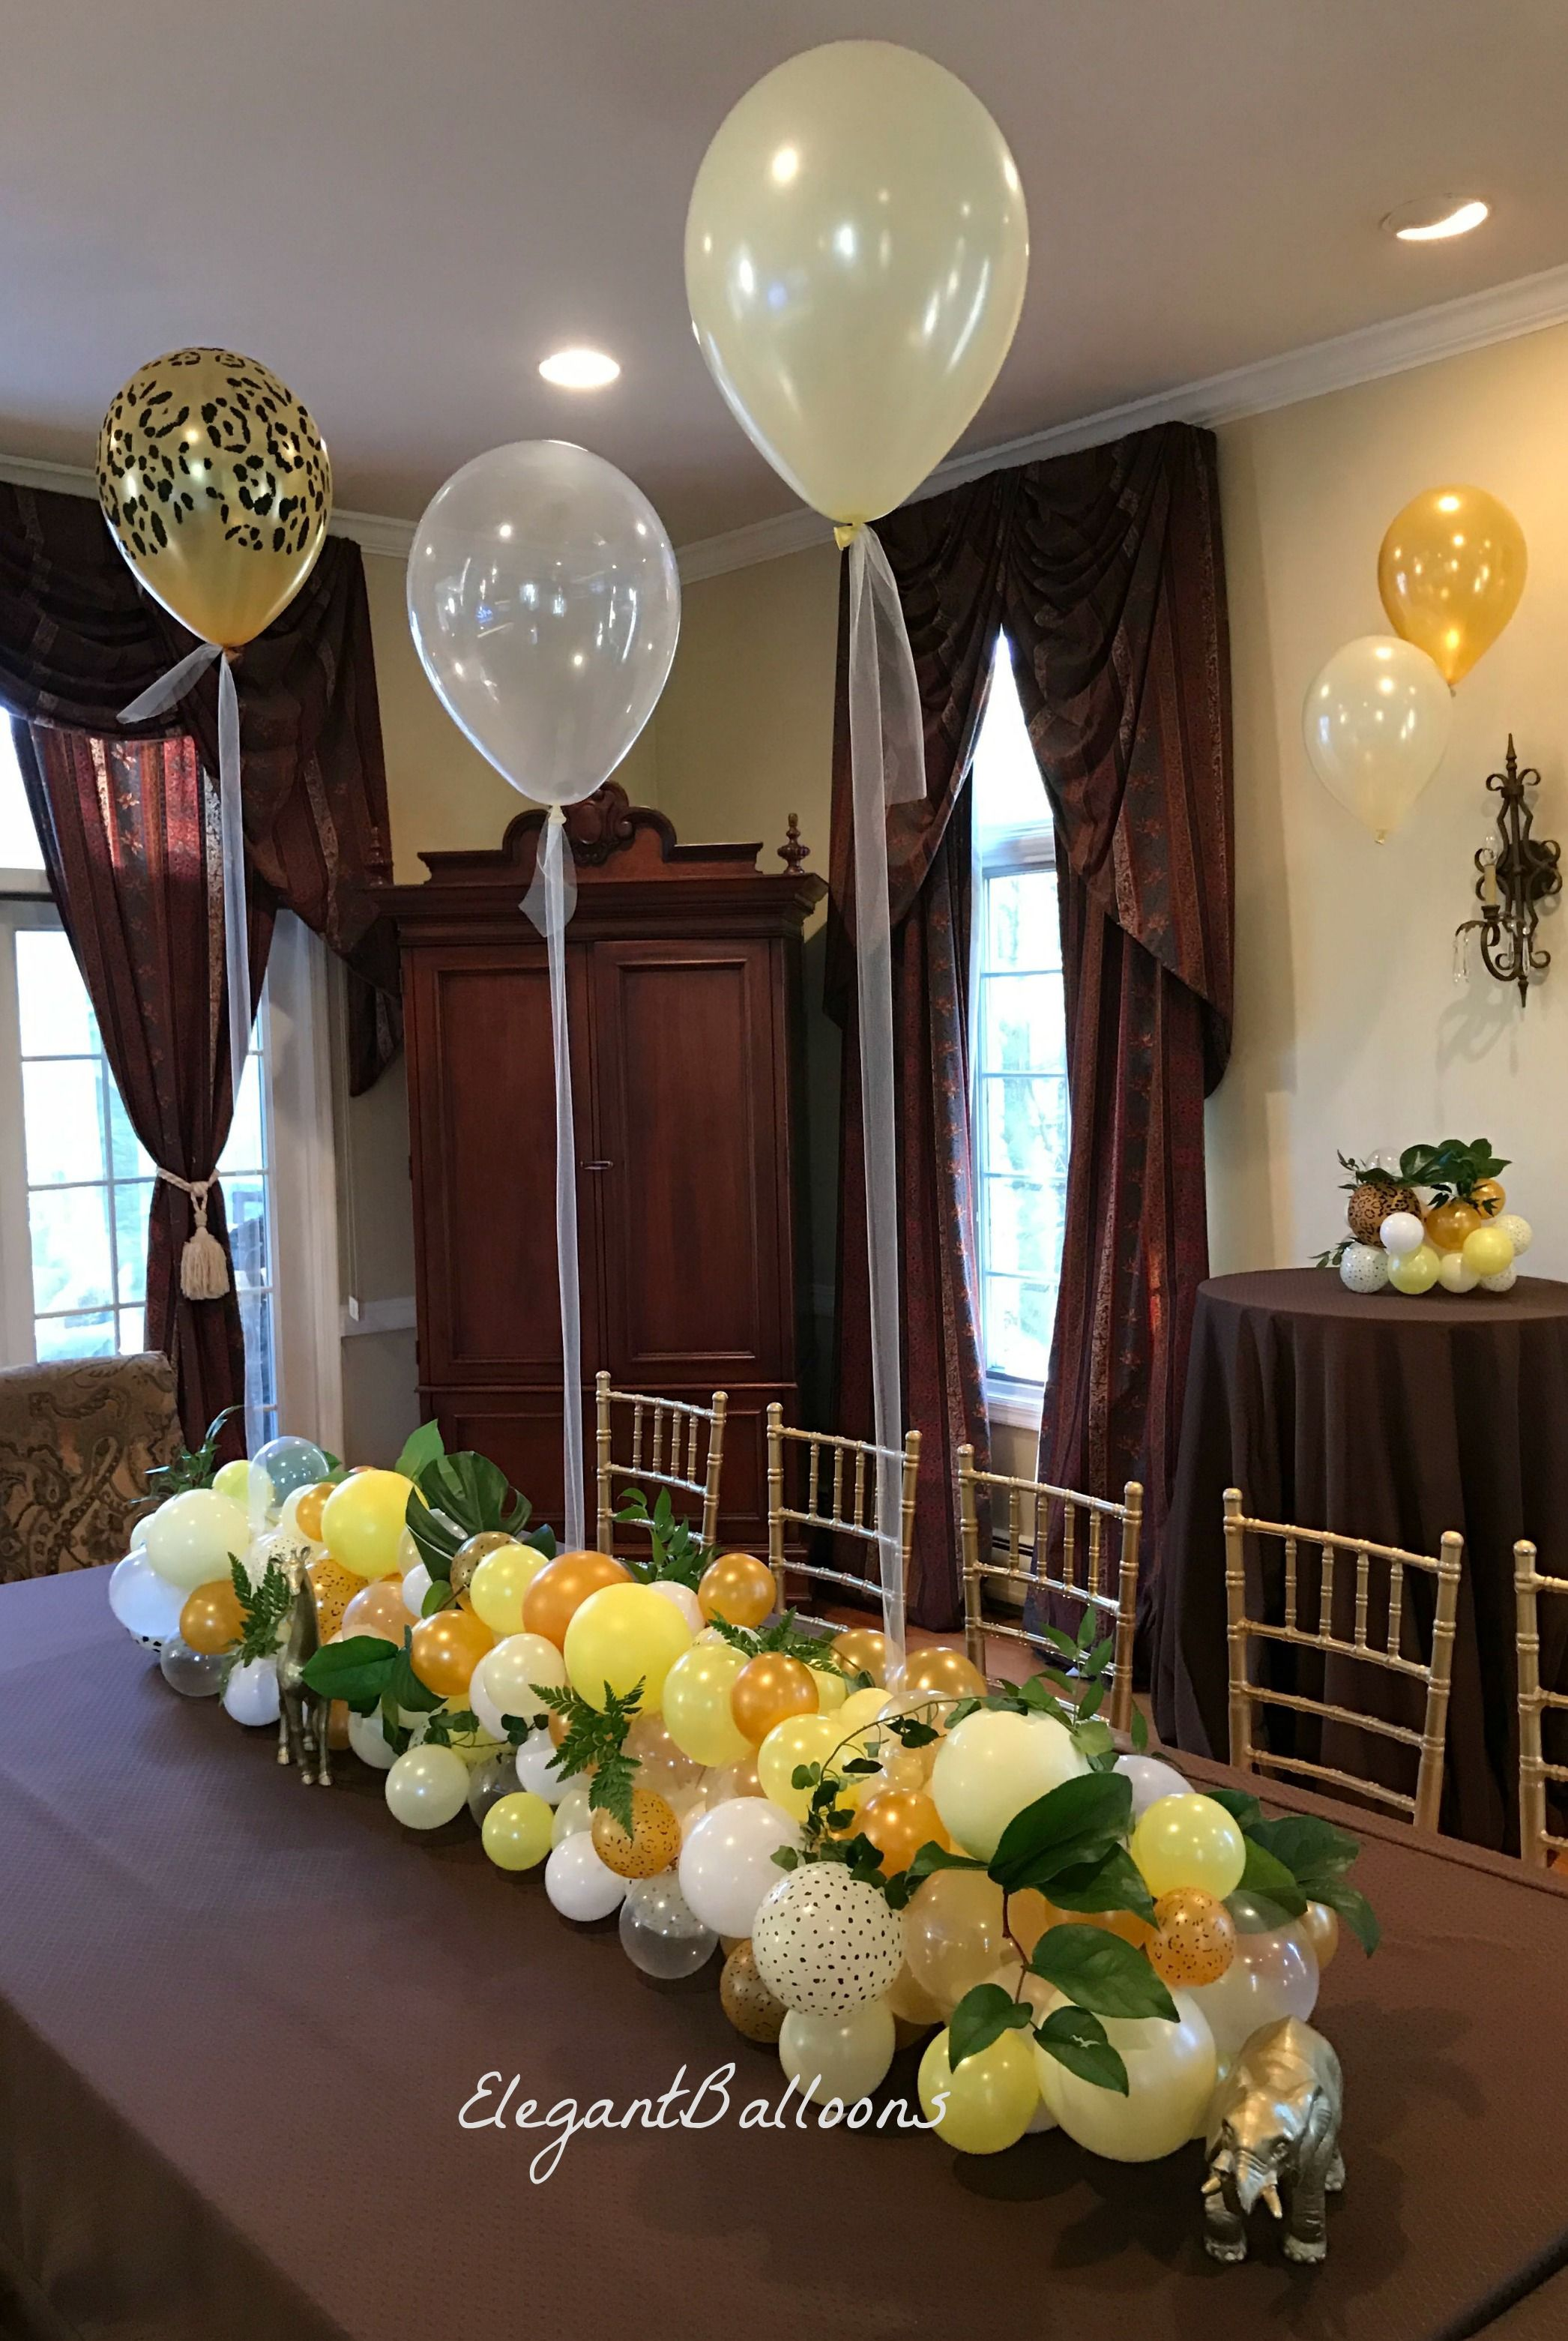 Organic balloon table runner elegantballoons for Birthday balloon centerpiece ideas